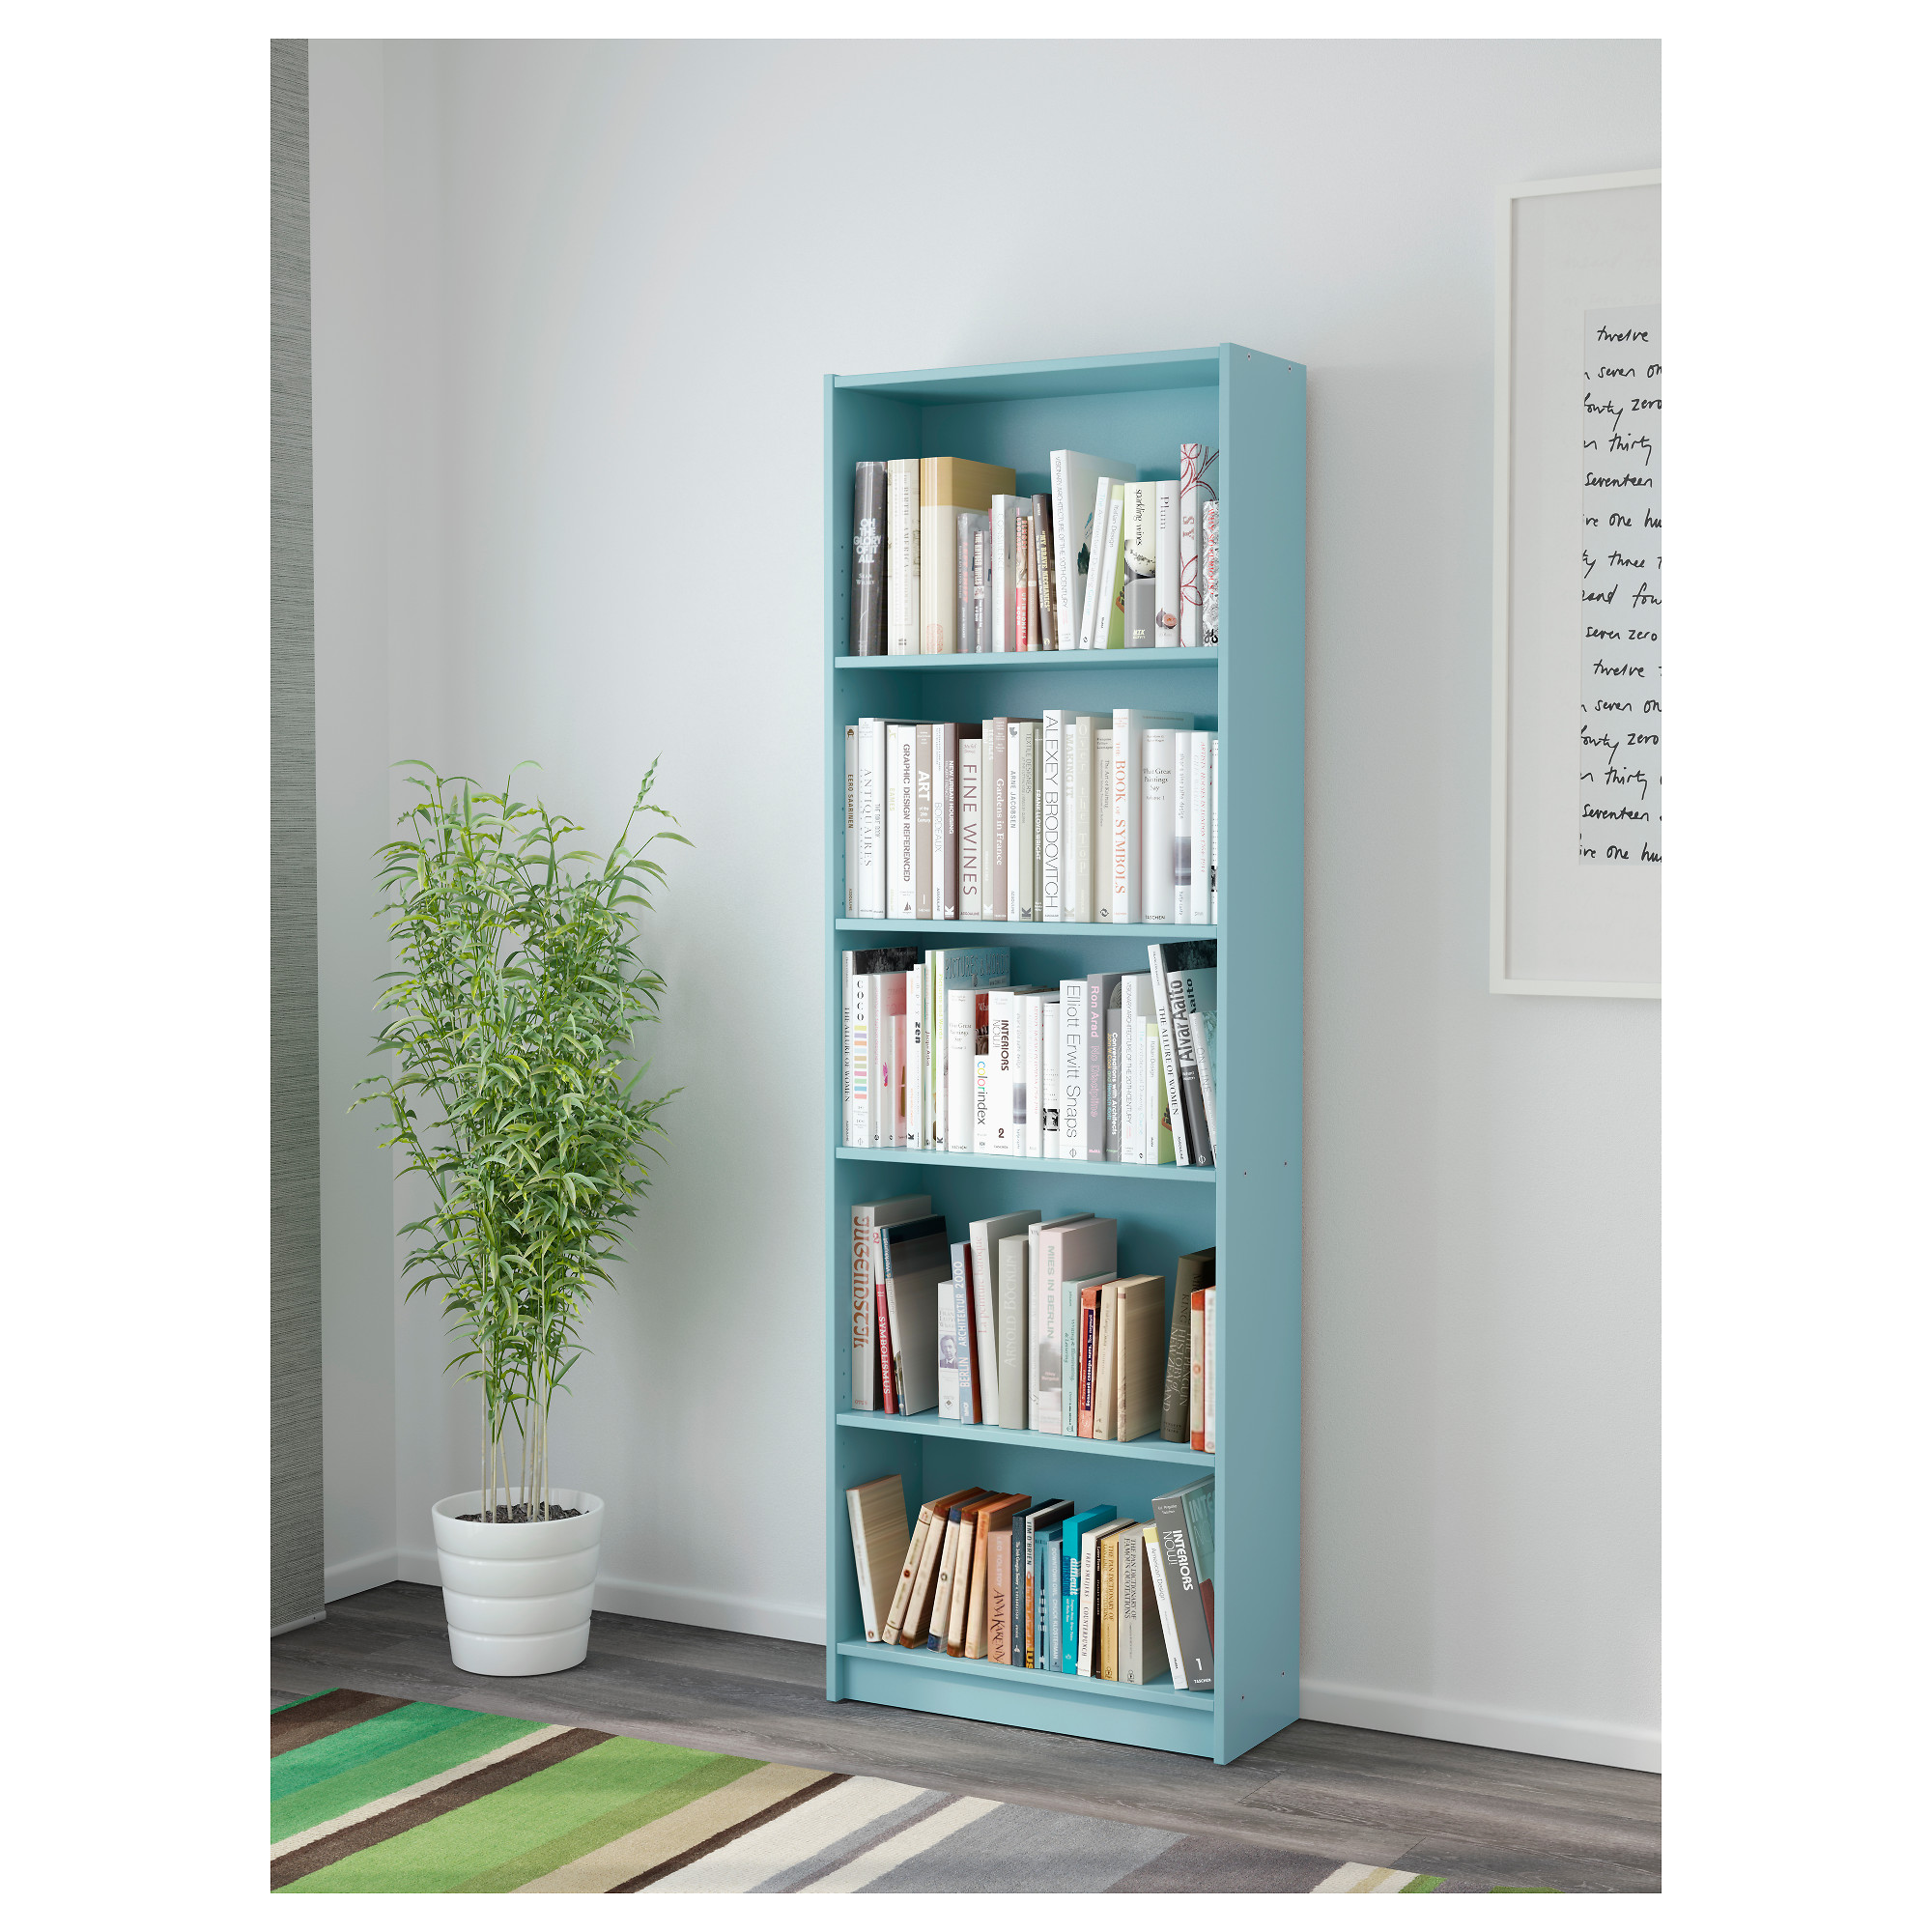 Image Gallery teal bookcase